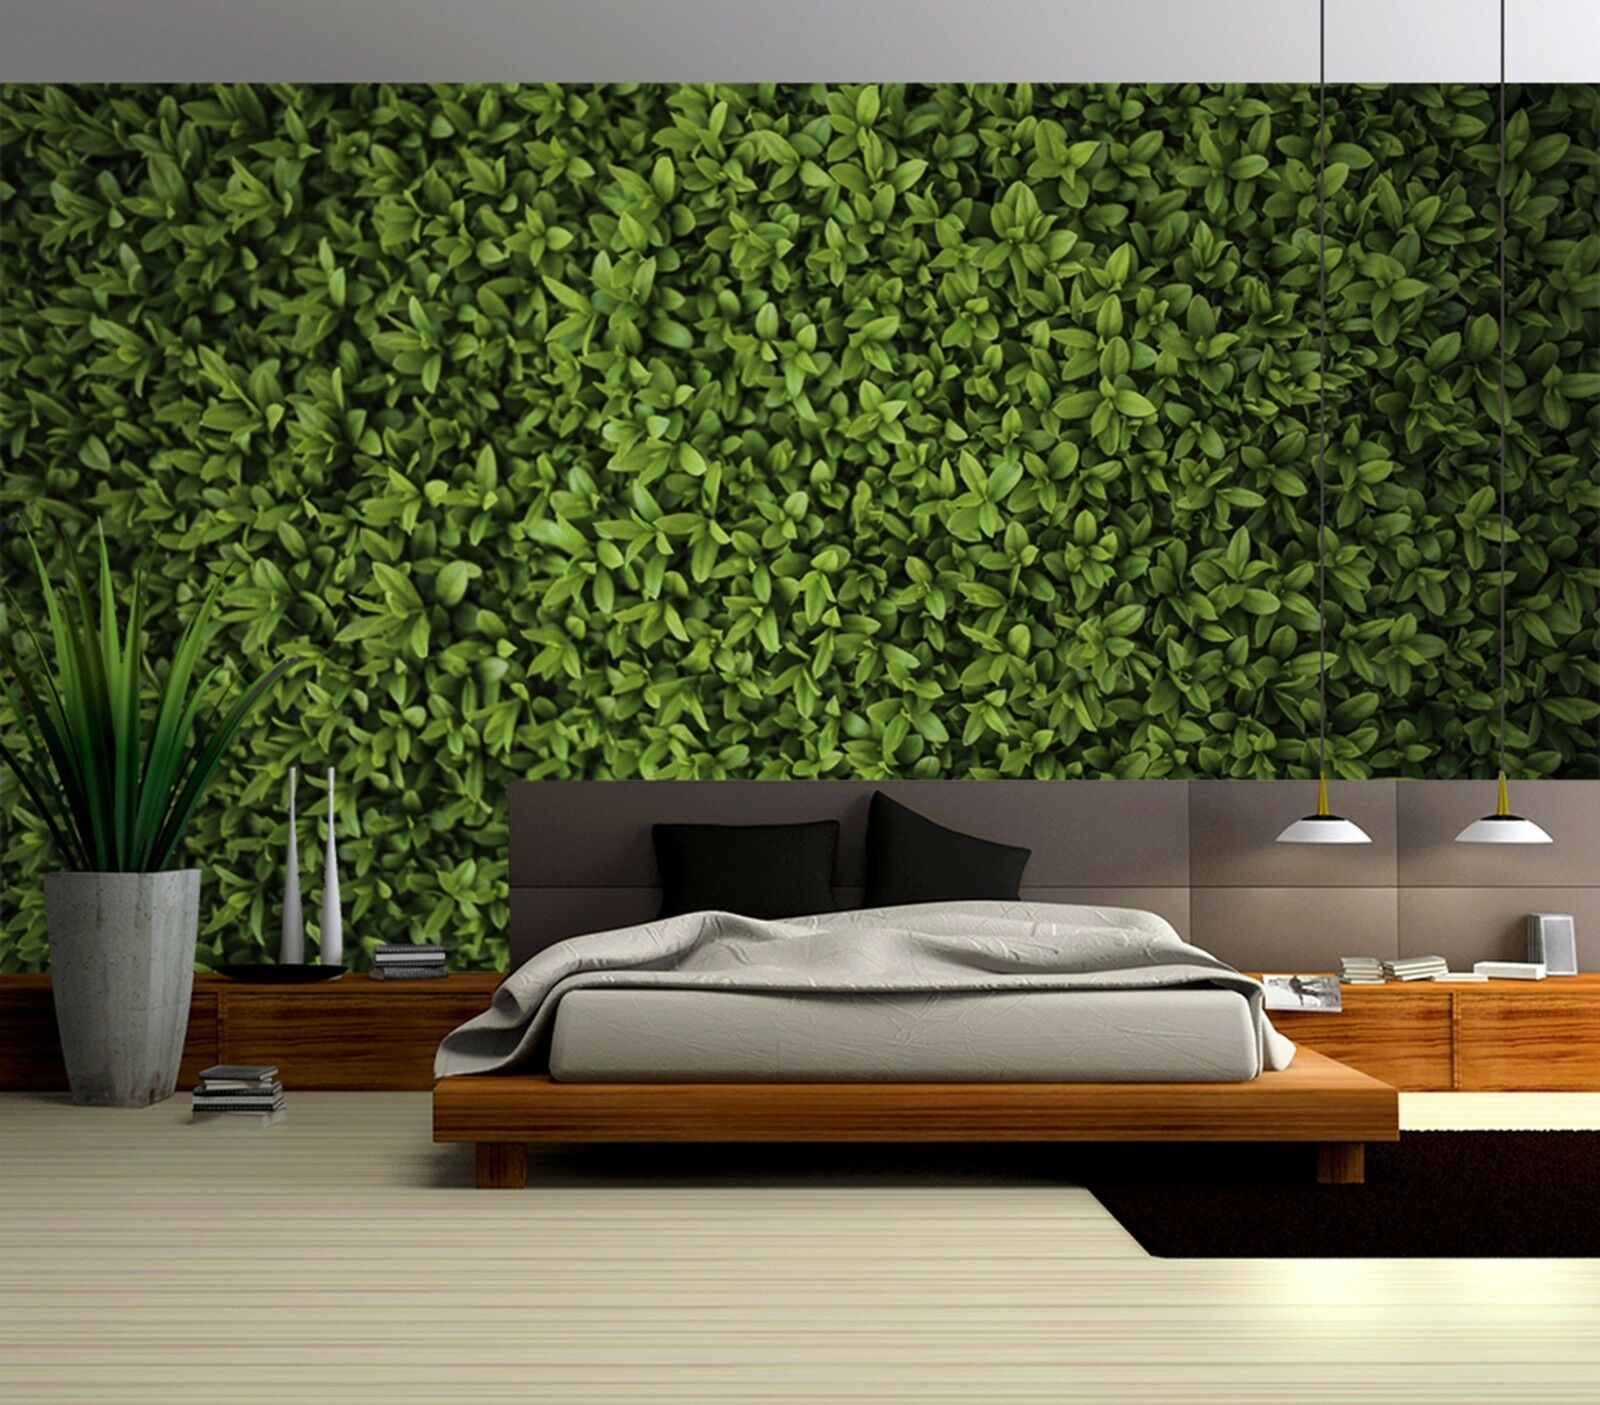 3D Leaf Grün wall 467 Wall Paper Wall Print Decal Wall Deco Indoor Wall Murals